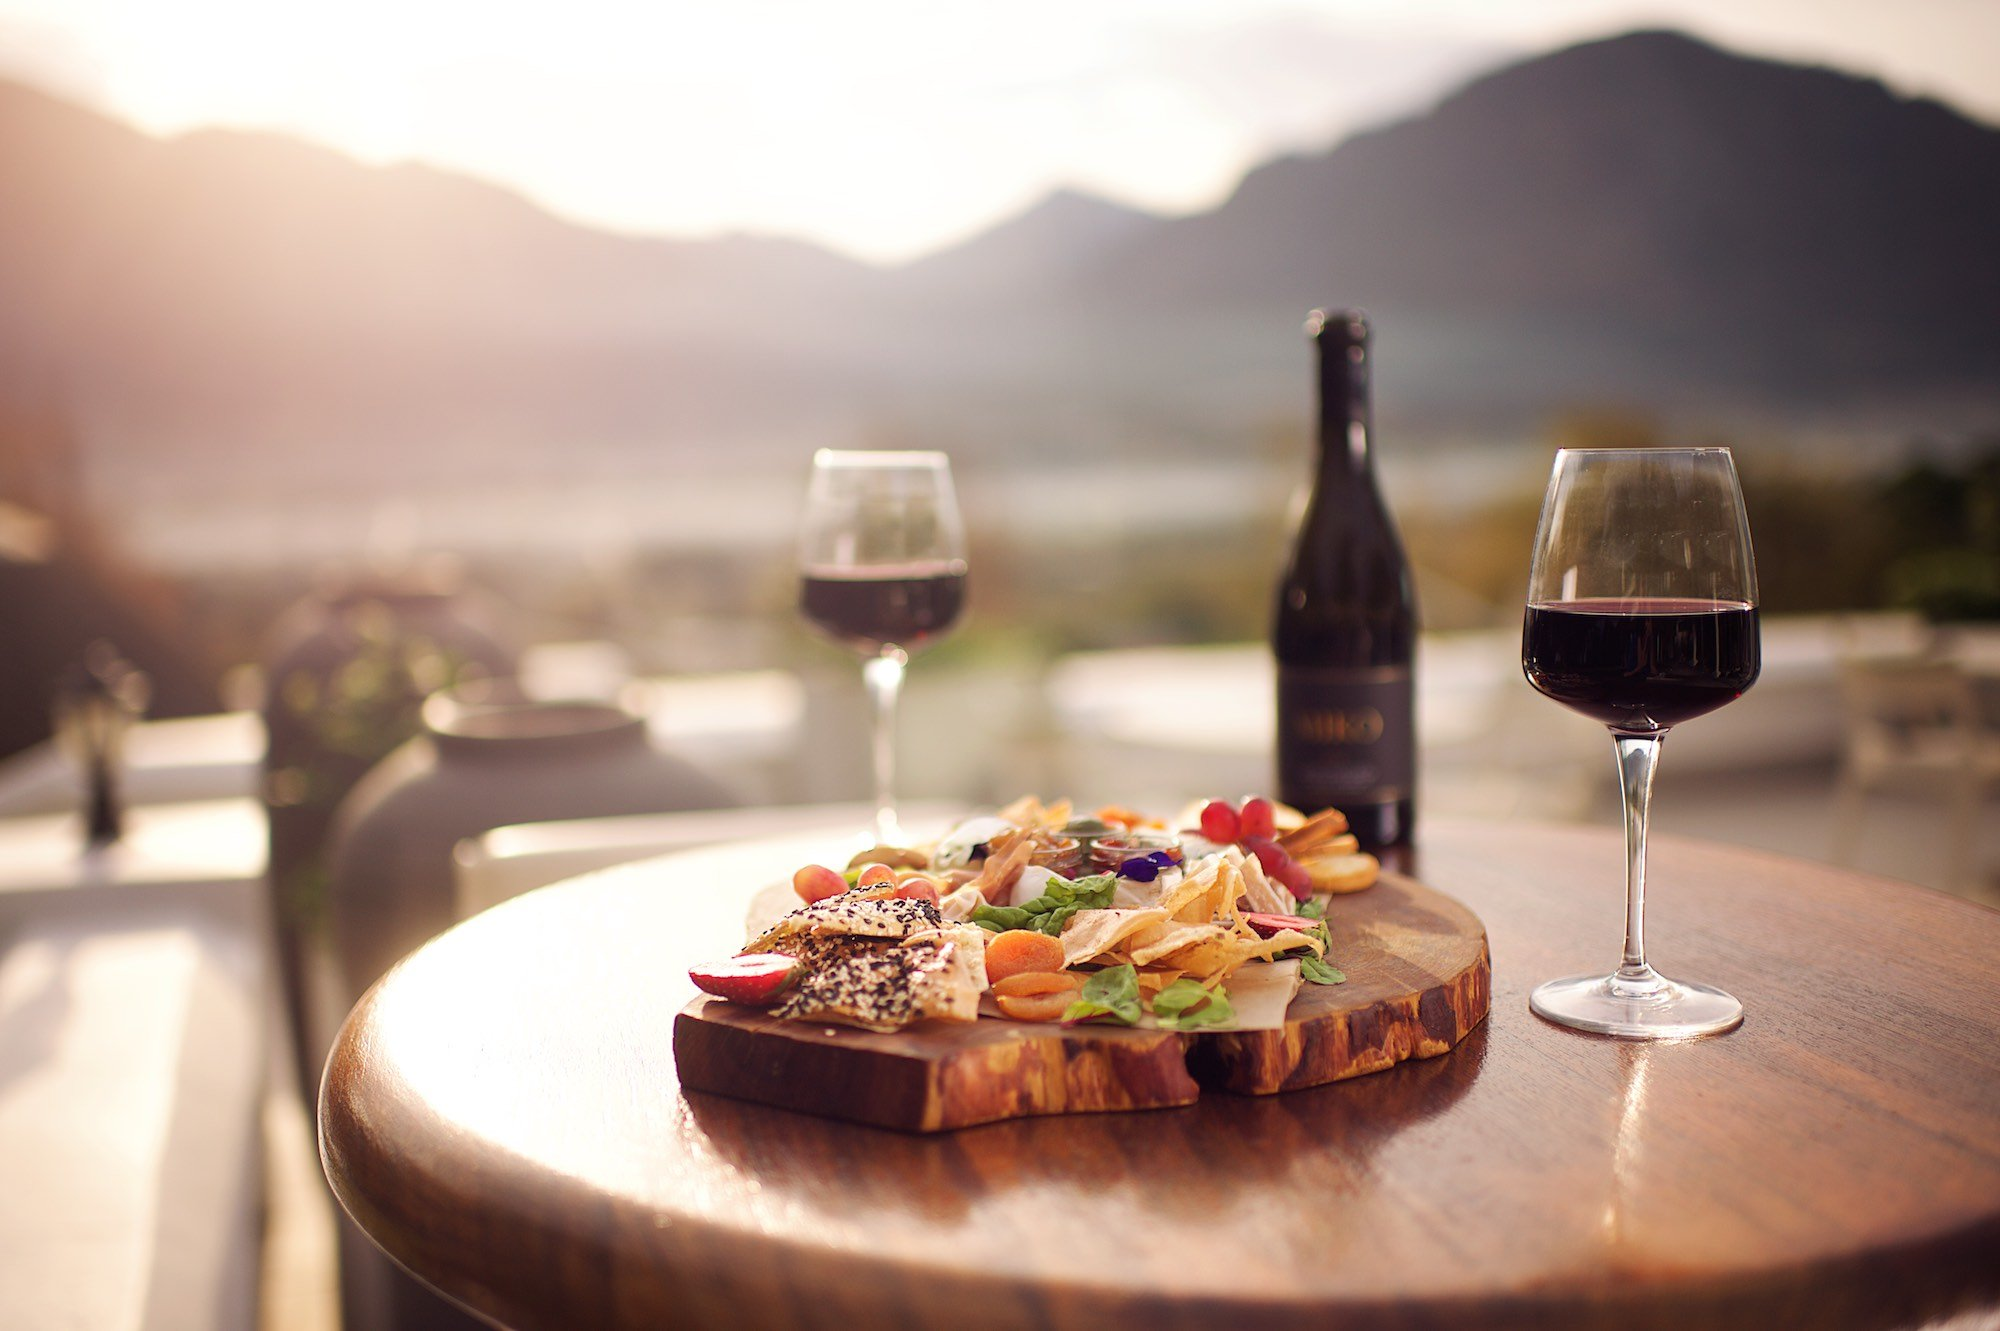 Sundowners mont rochelle Franschhoek fathers day sonia cabano blog eatdrinkcapetown